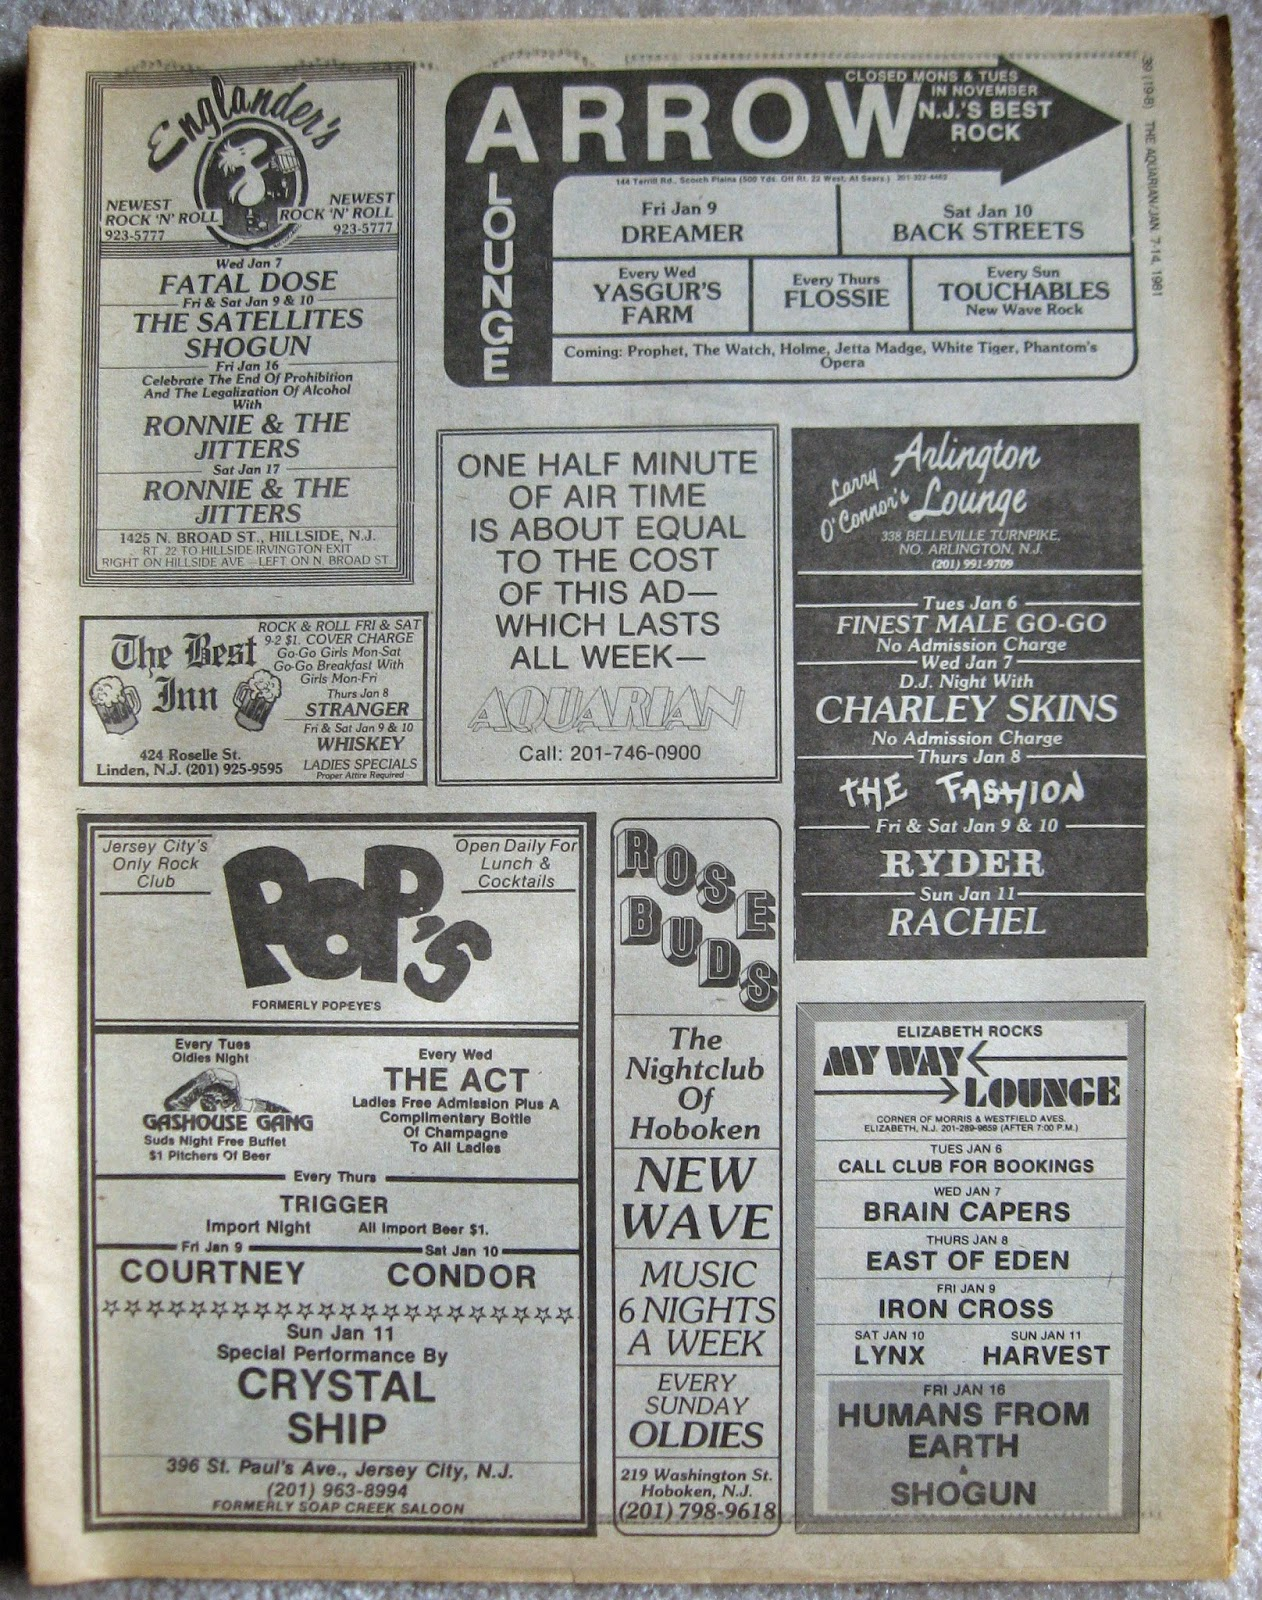 Englander's - Arrow Lounge - The Best Inn - Pop's - Rose Buds - Arlington Lounge - My Way Lounge band line ups January 1981